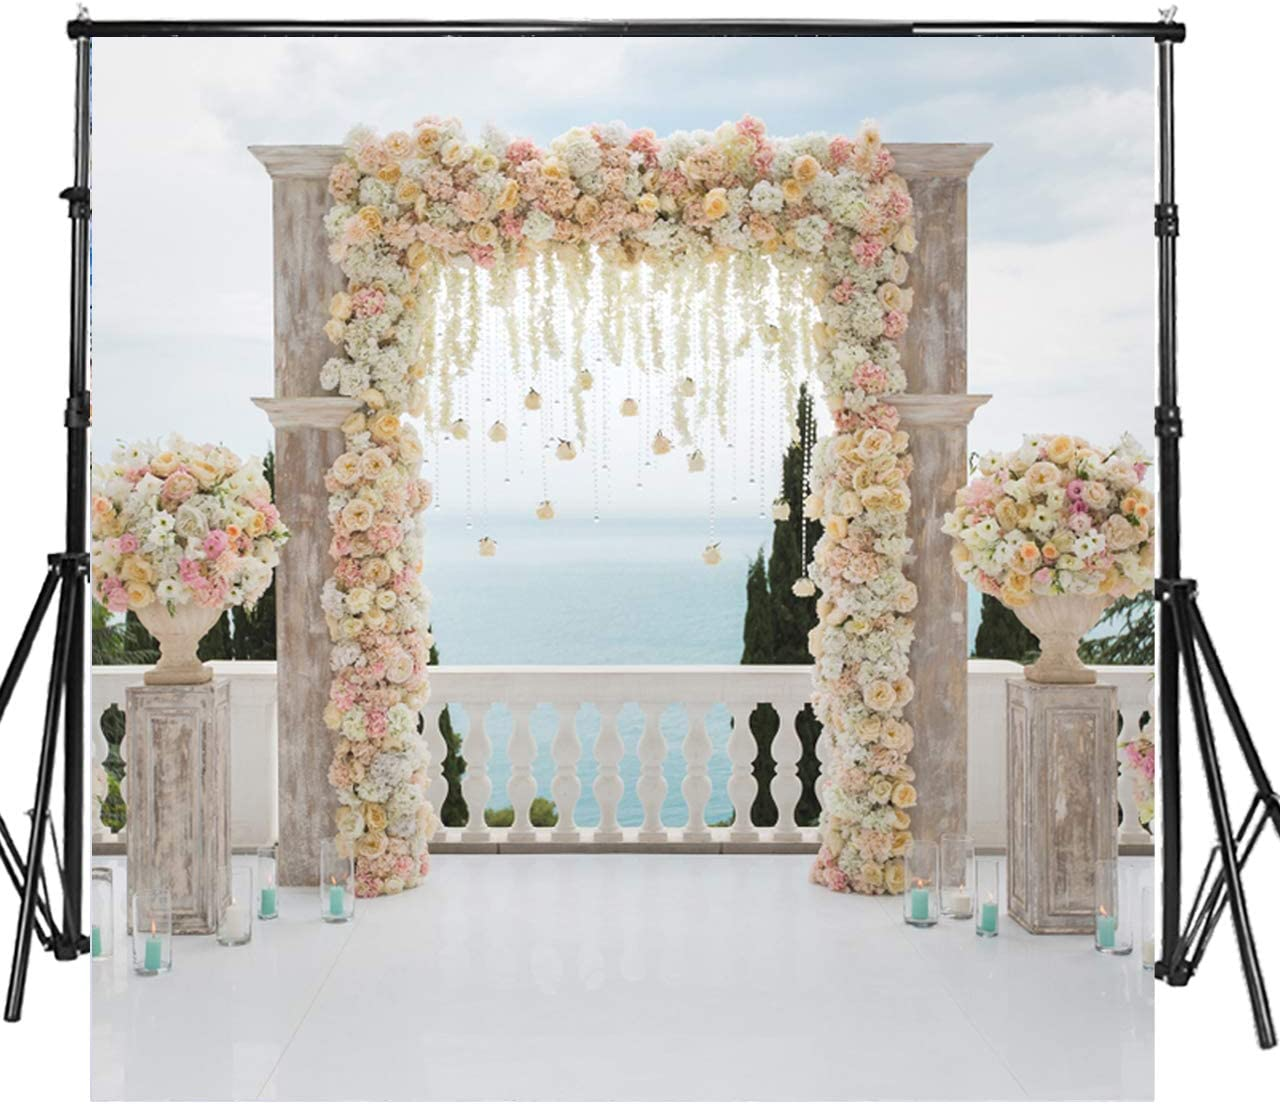 WP022//8x6ft Sensfun 8x6ft Wedding Ceremony Photo Backdrops Bridal Shower Arch White Curtain Rose Flower Decor Photography Background Flowers Petal Falling on Sand Beach Portrait Photo Studio Props